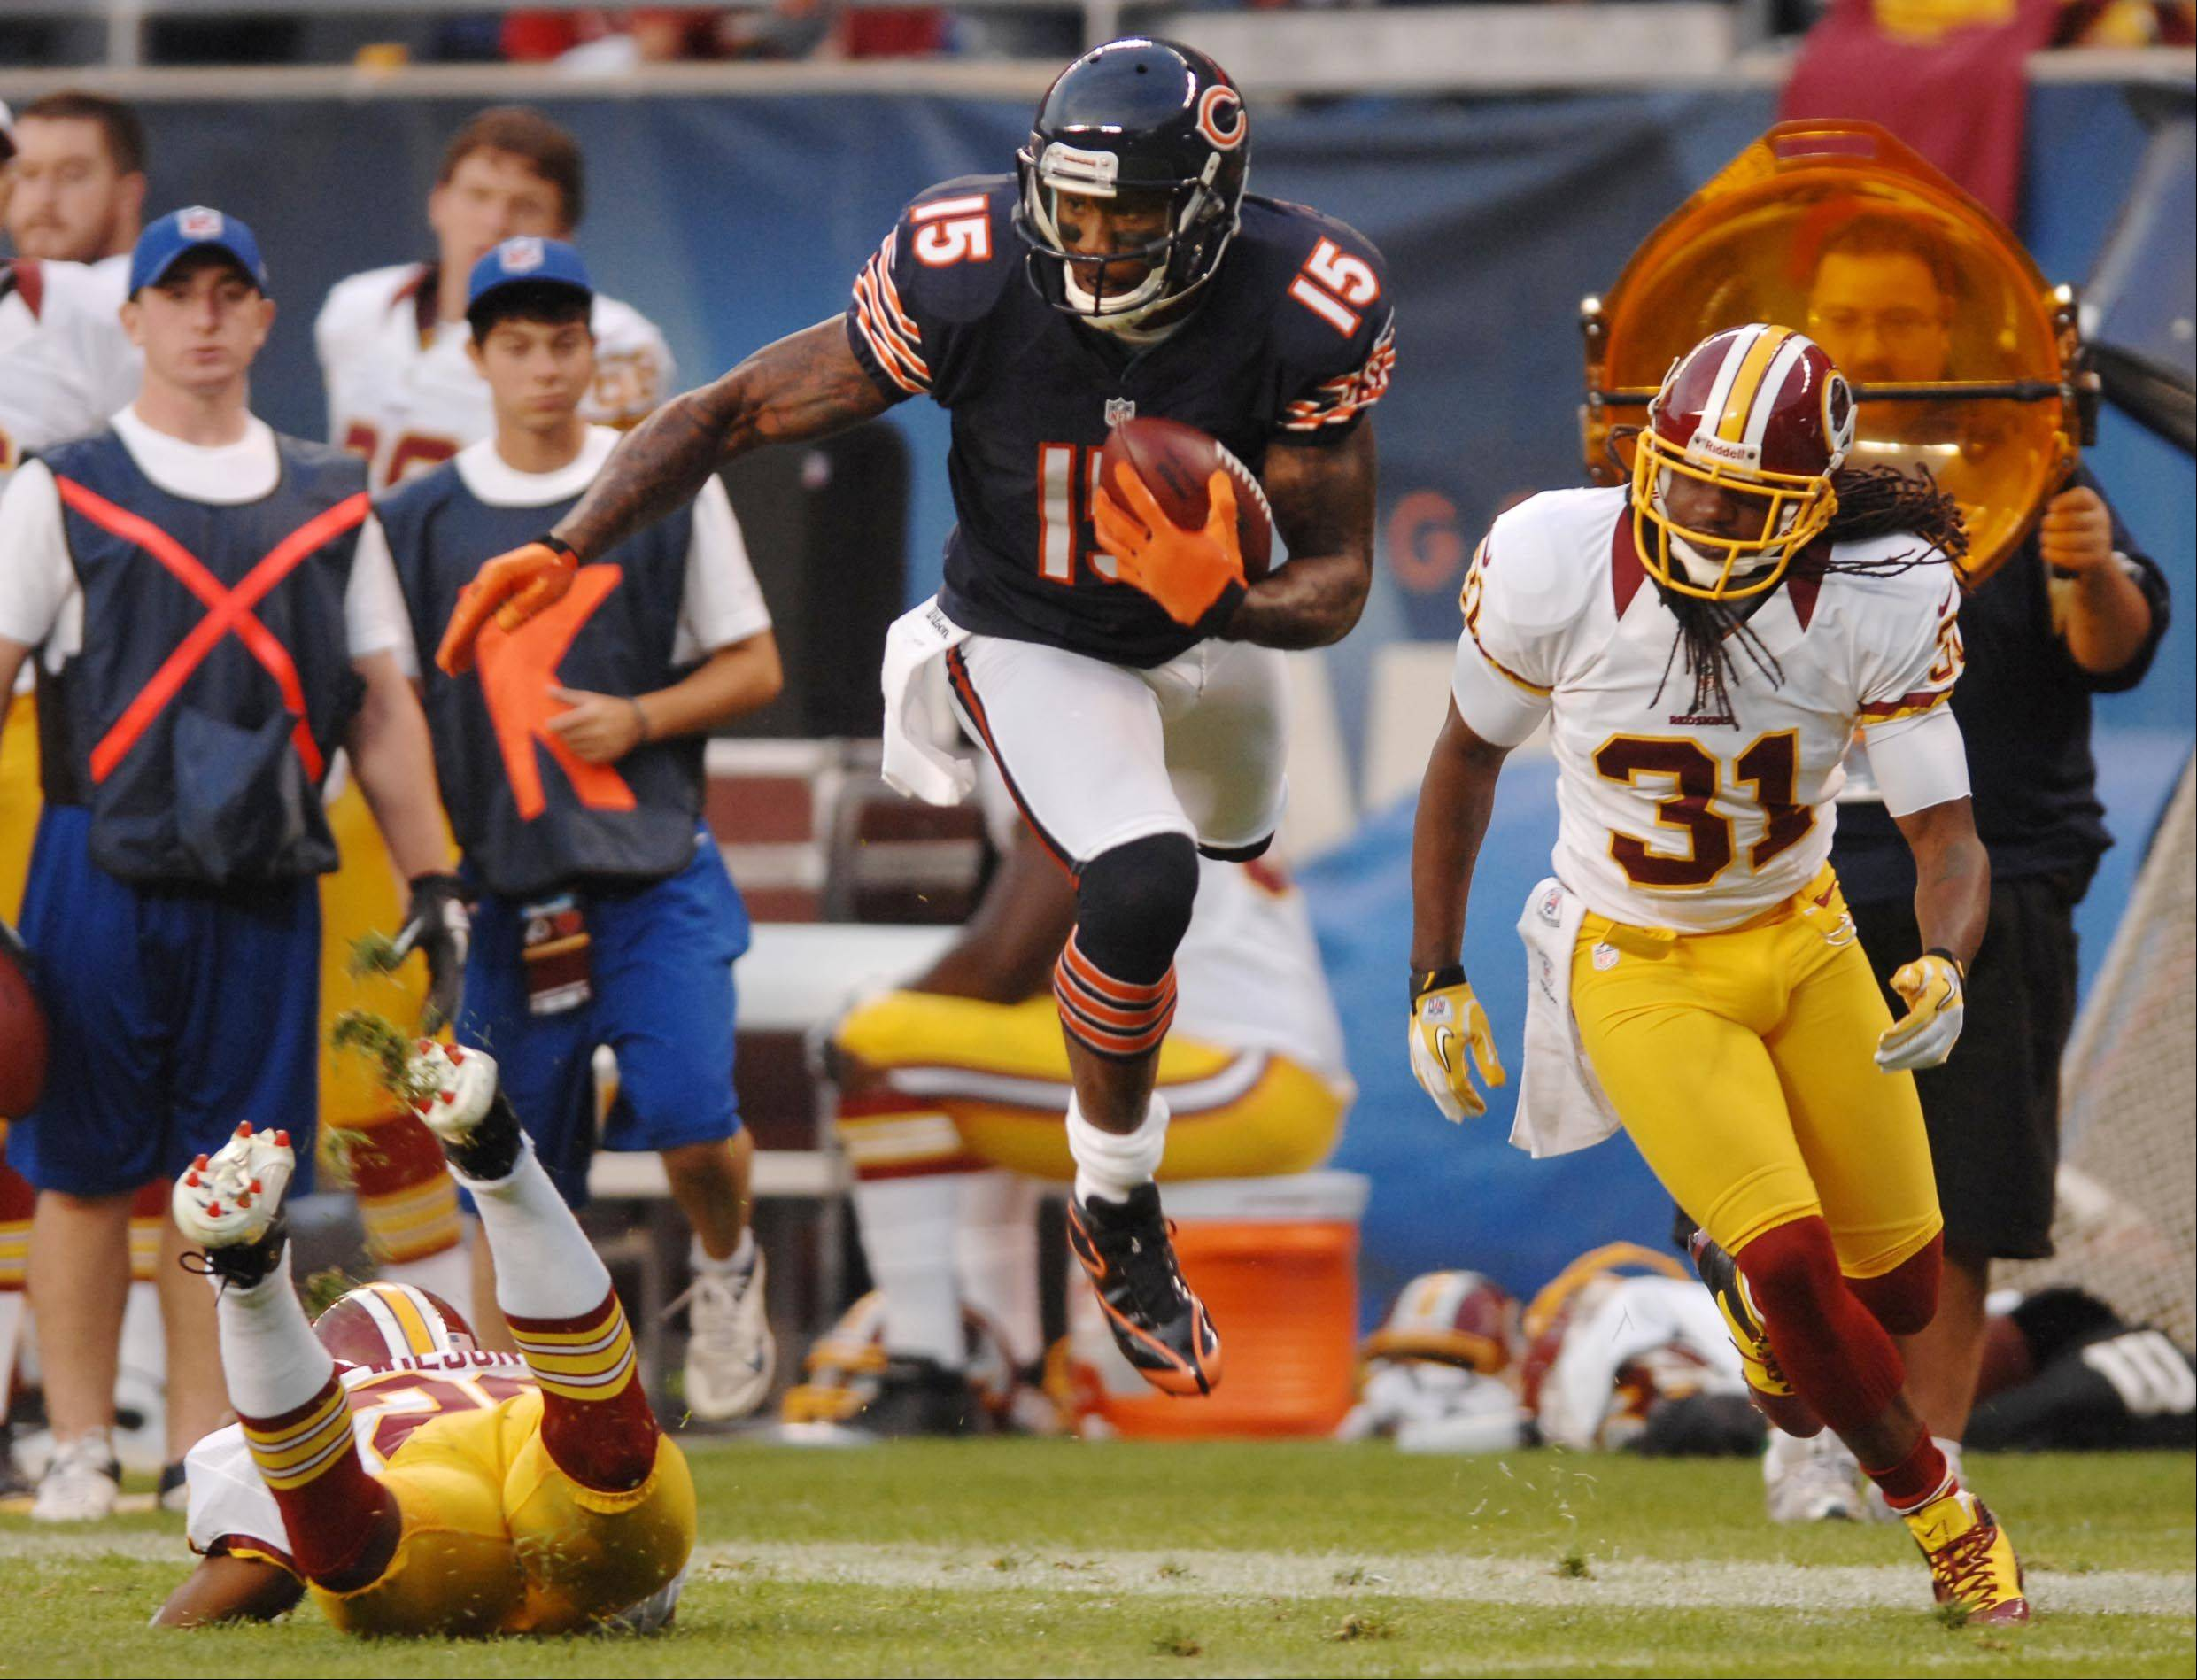 Chicago Bears wide receiver Brandon Marshall jumps over Washington Redskins defensive back Josh Wilson as defensive back Brandon Meriweather covers Saturday in the second preseason game at Soldier Field in Chicago.